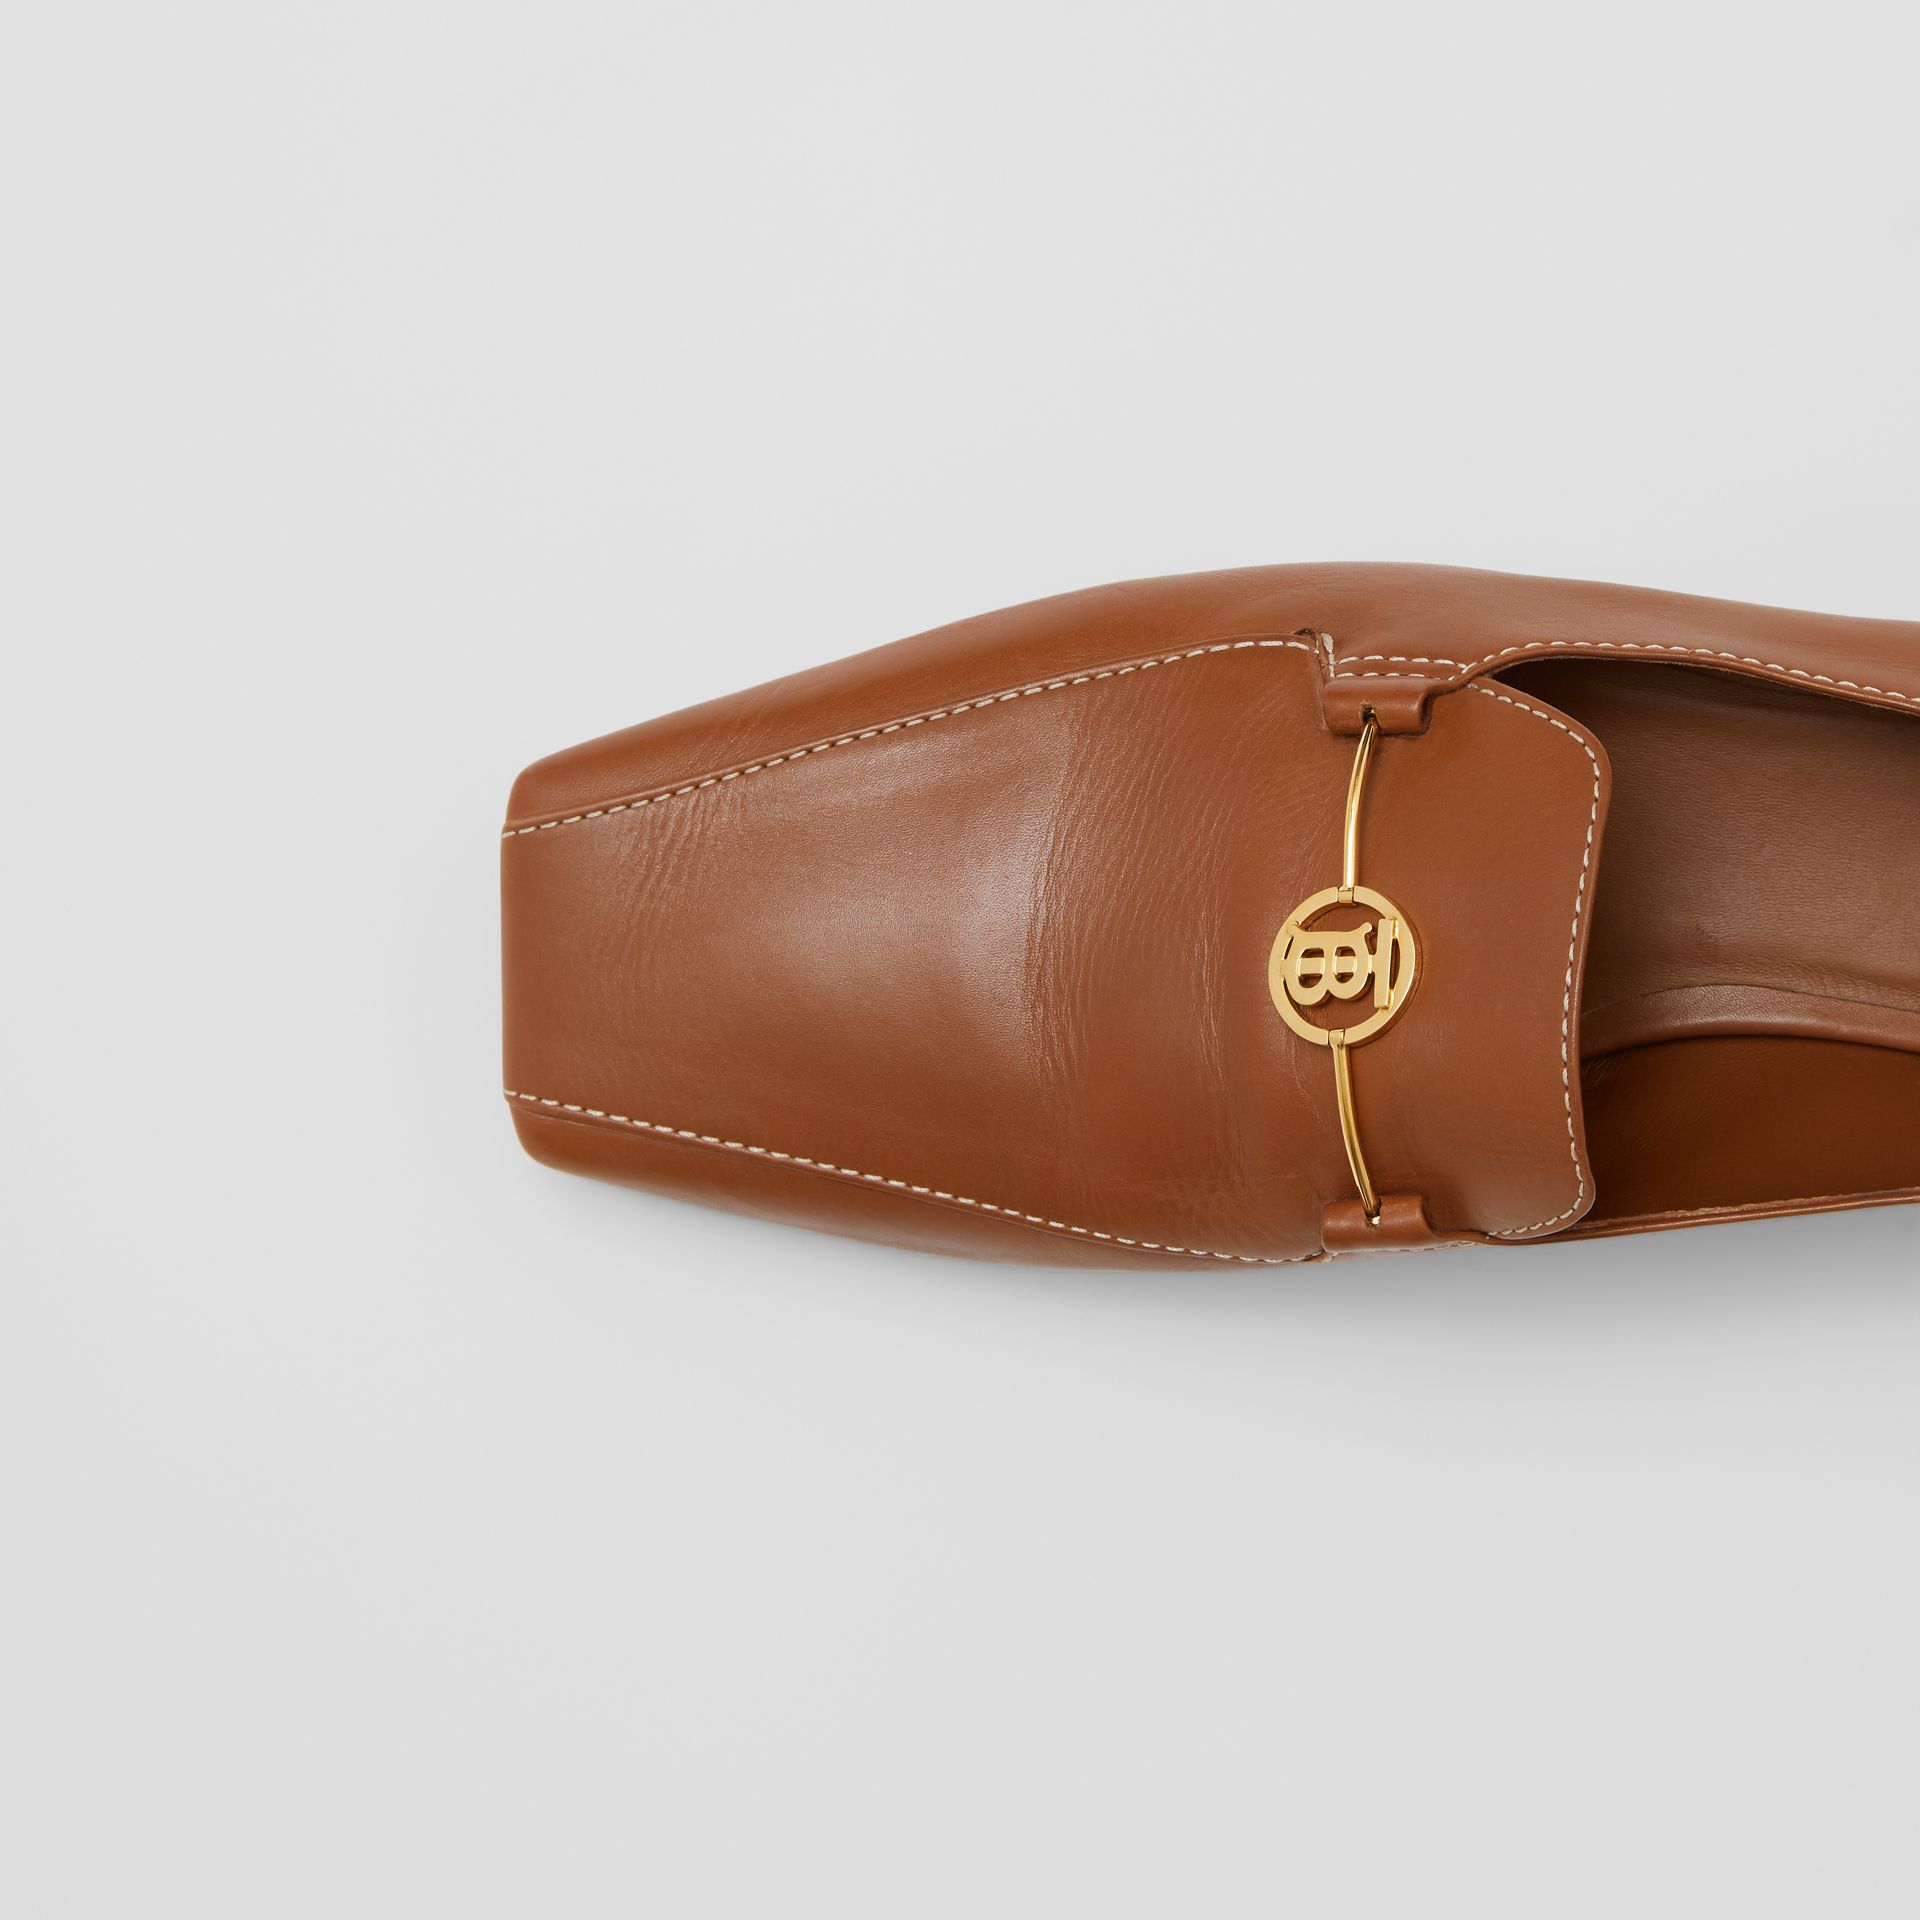 Monogram Motif Leather Loafers in Tan - Women | Burberry United States - gallery image 1